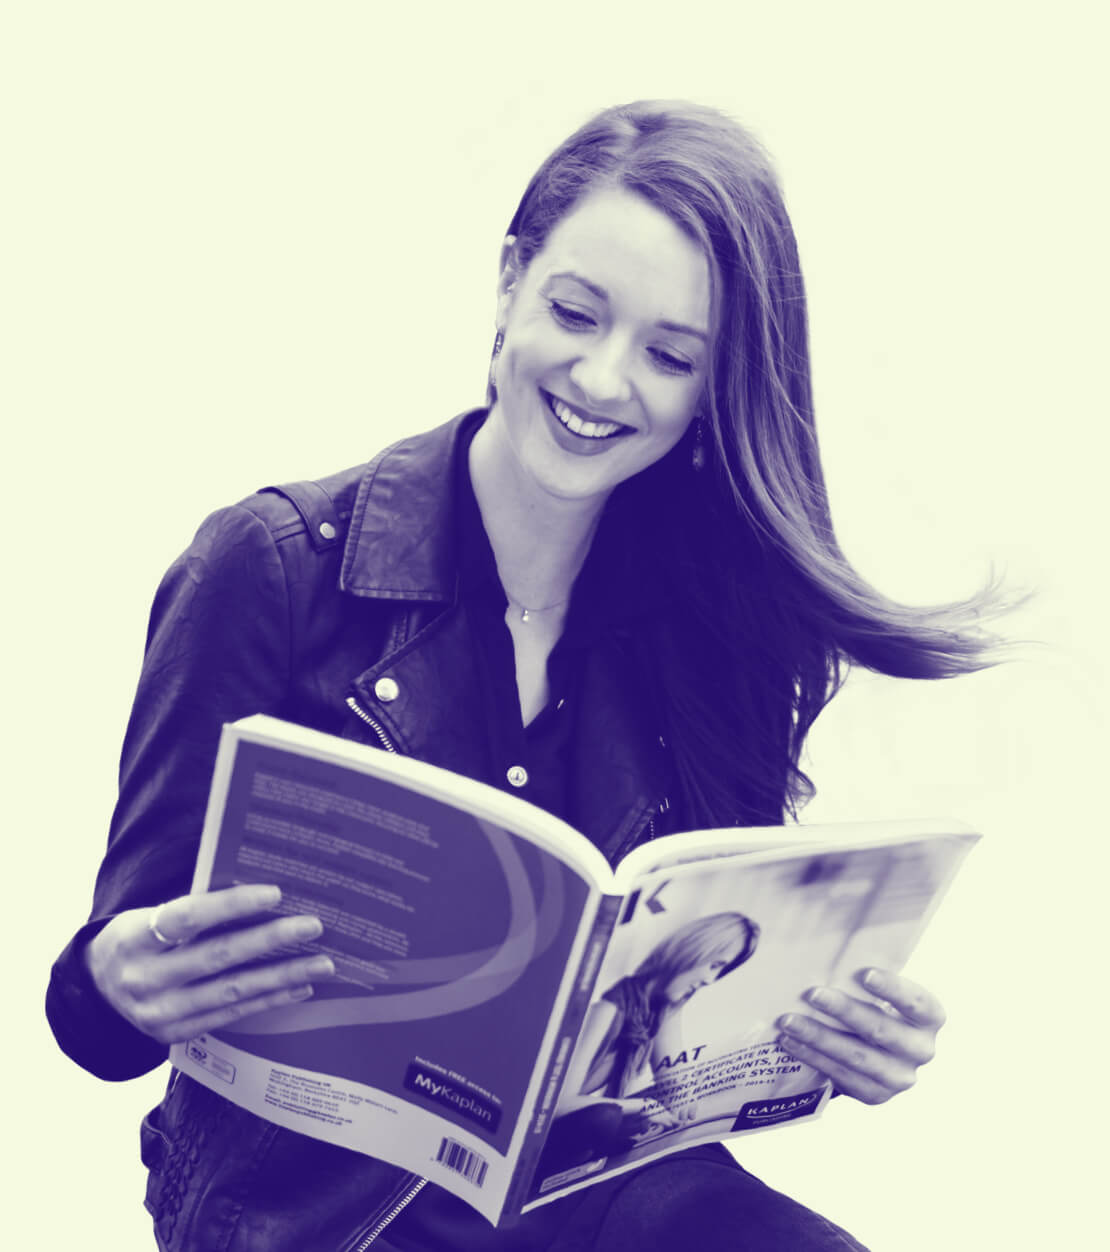 A woman reading a Kaplan Publishing book